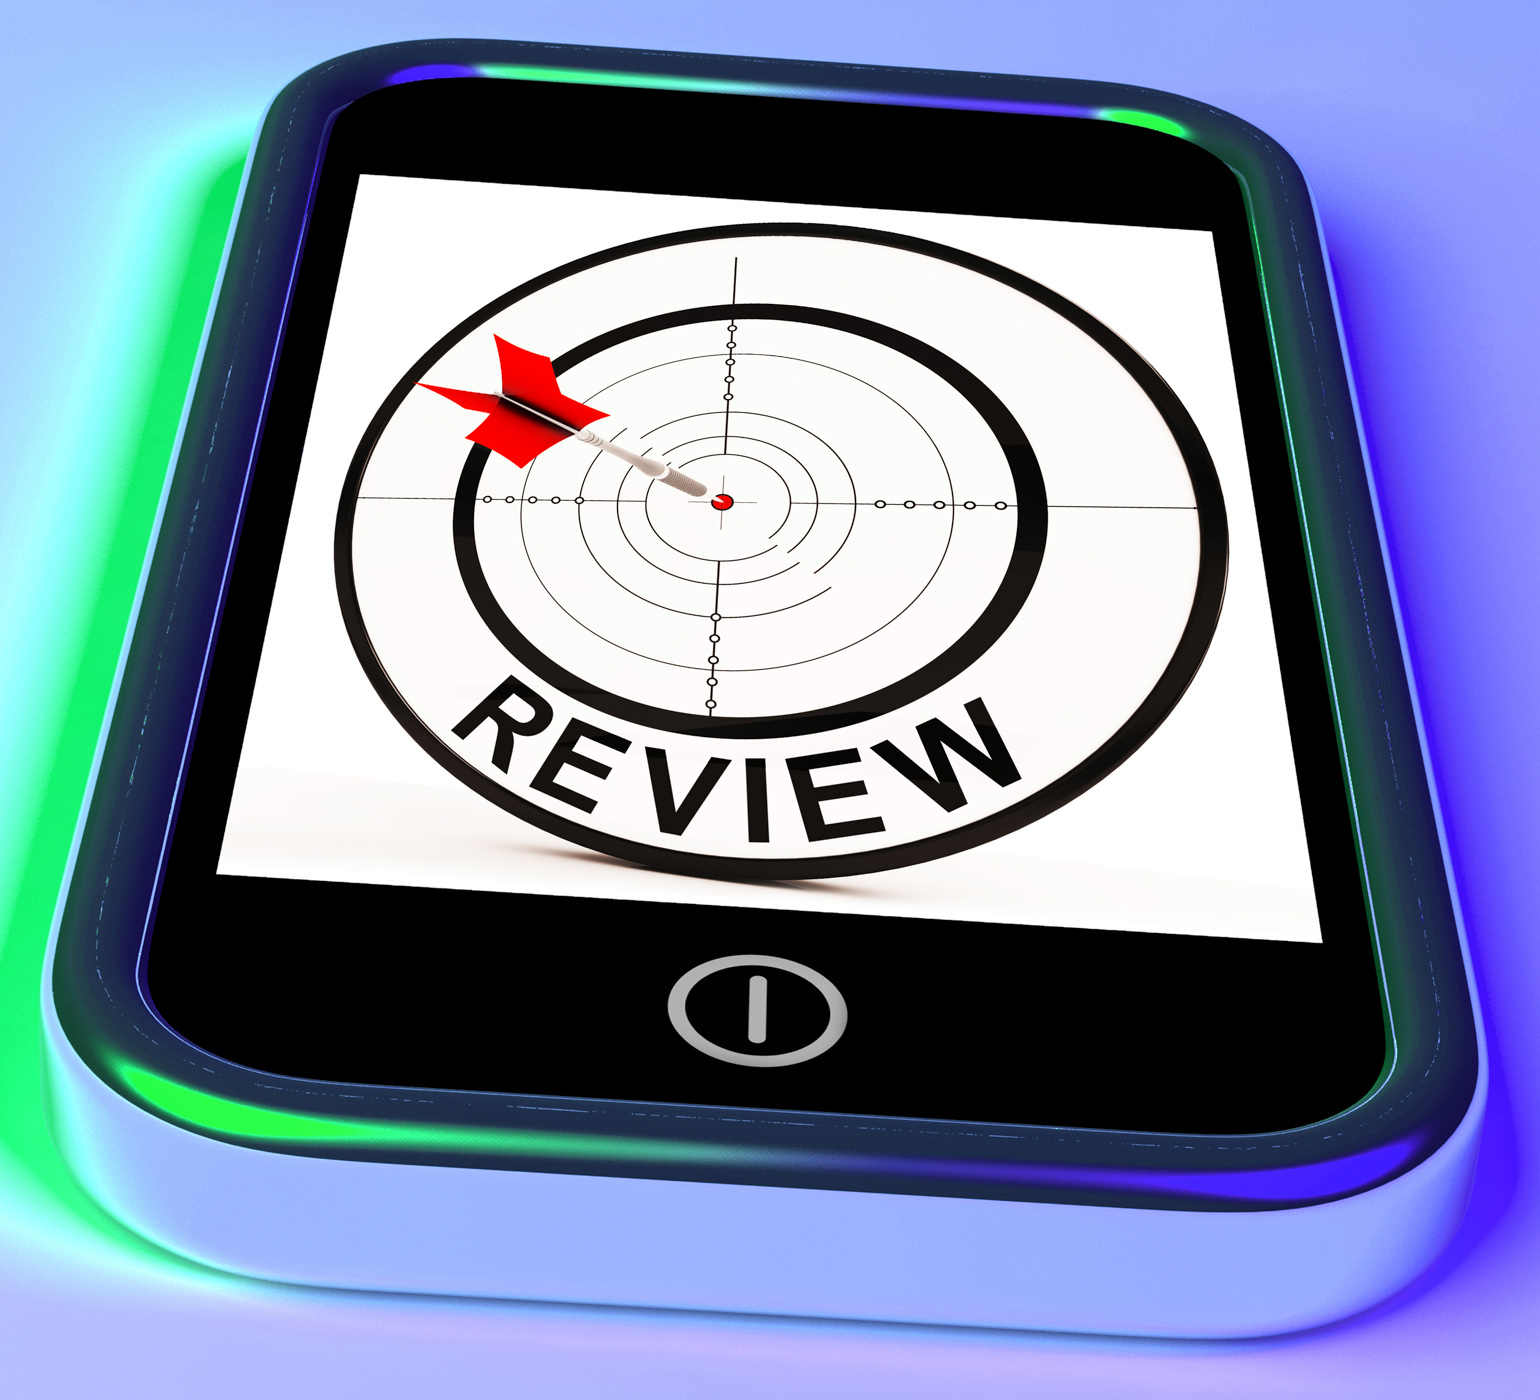 Review smartphone shows feedback evaluation and assessment photo